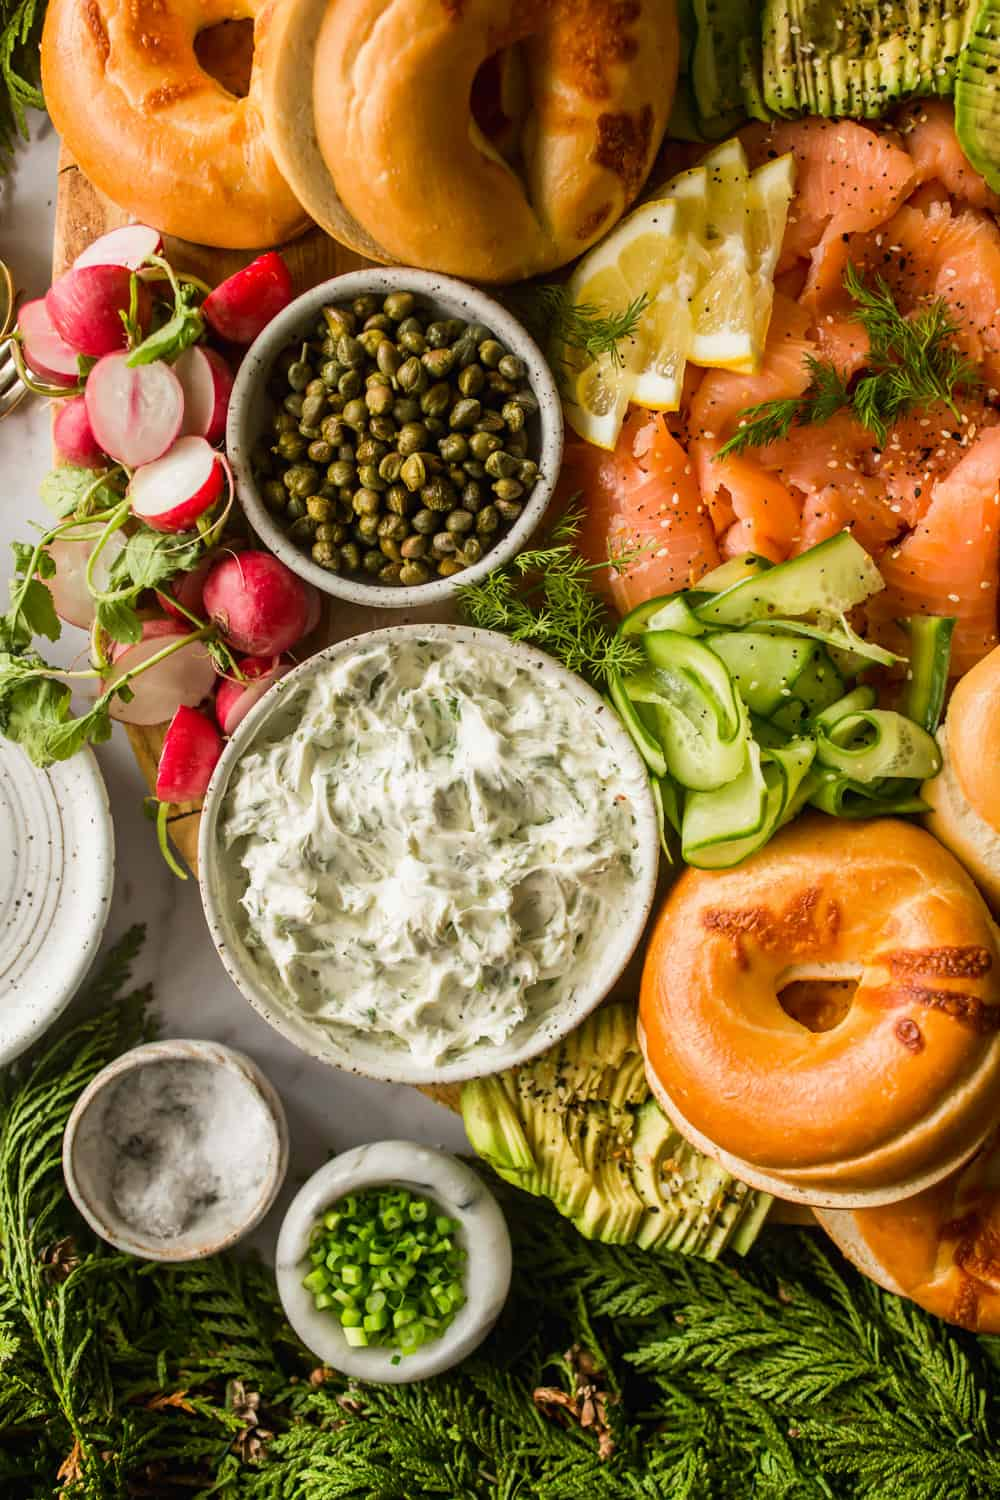 Close up of herbed cream cheese in a bowl next to a bowl of capers, bagels, salmon, and vegetables.